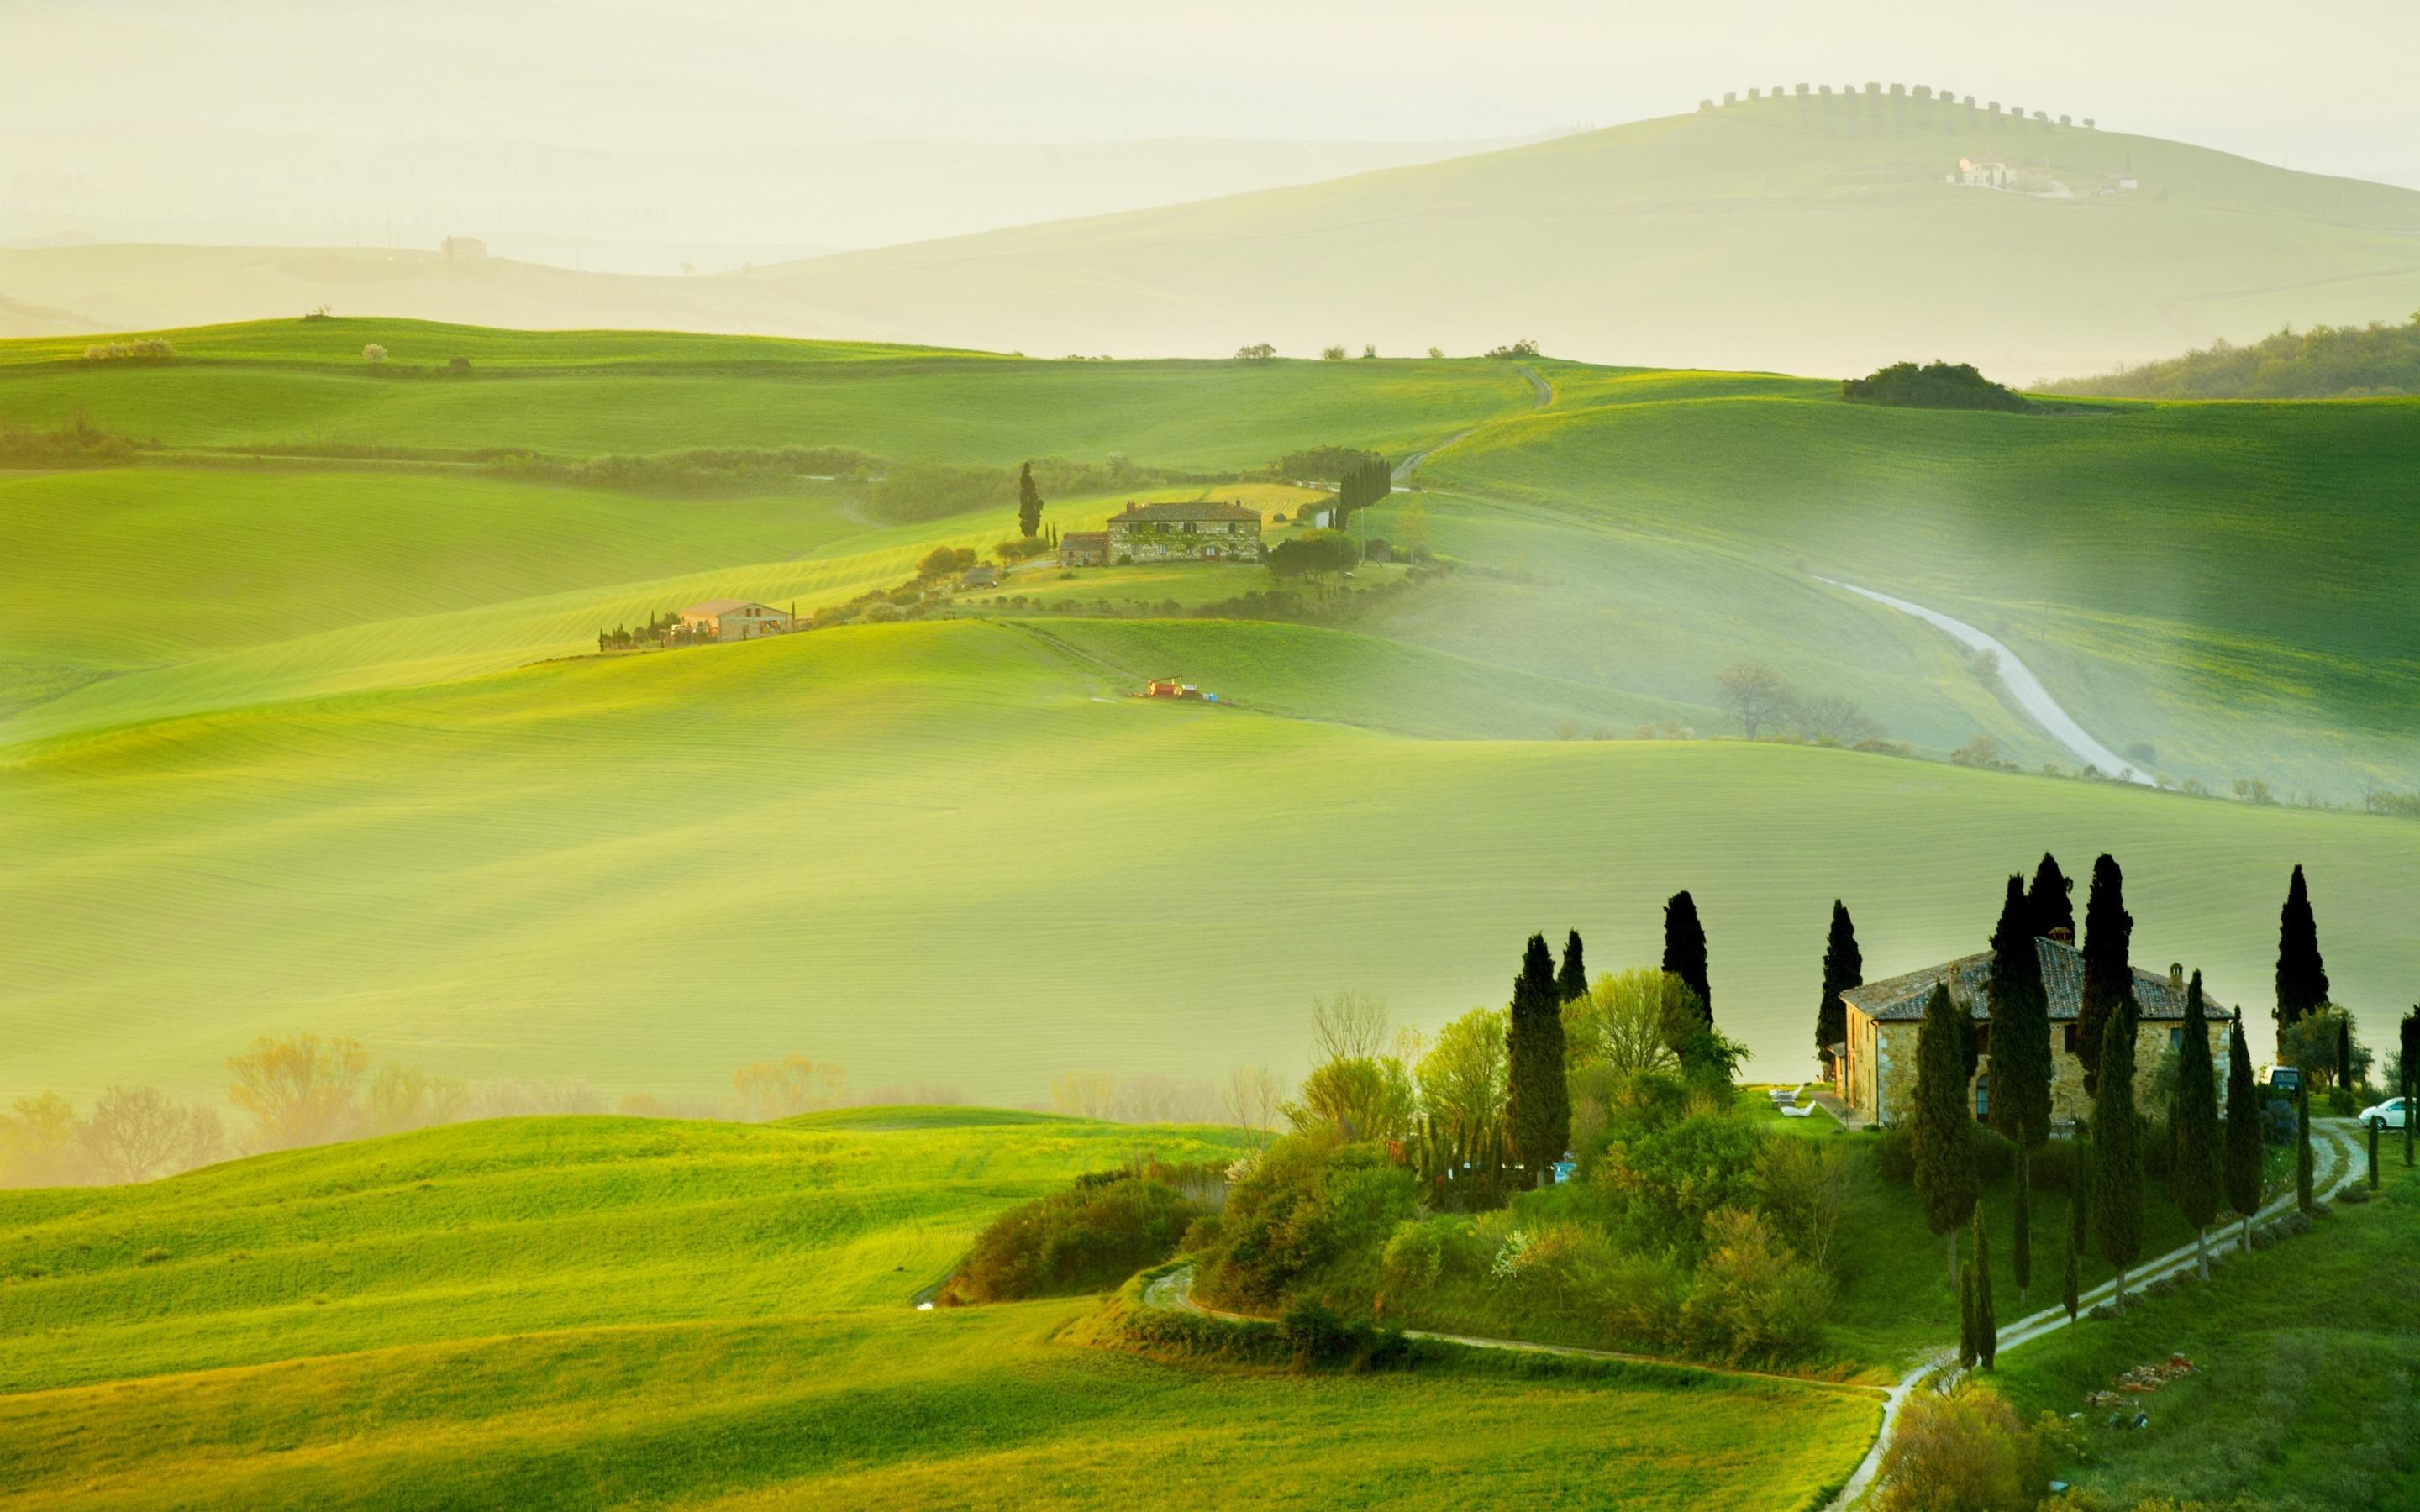 Wallpapers Tuscany, countryside, Italy, nature, trees, green fields